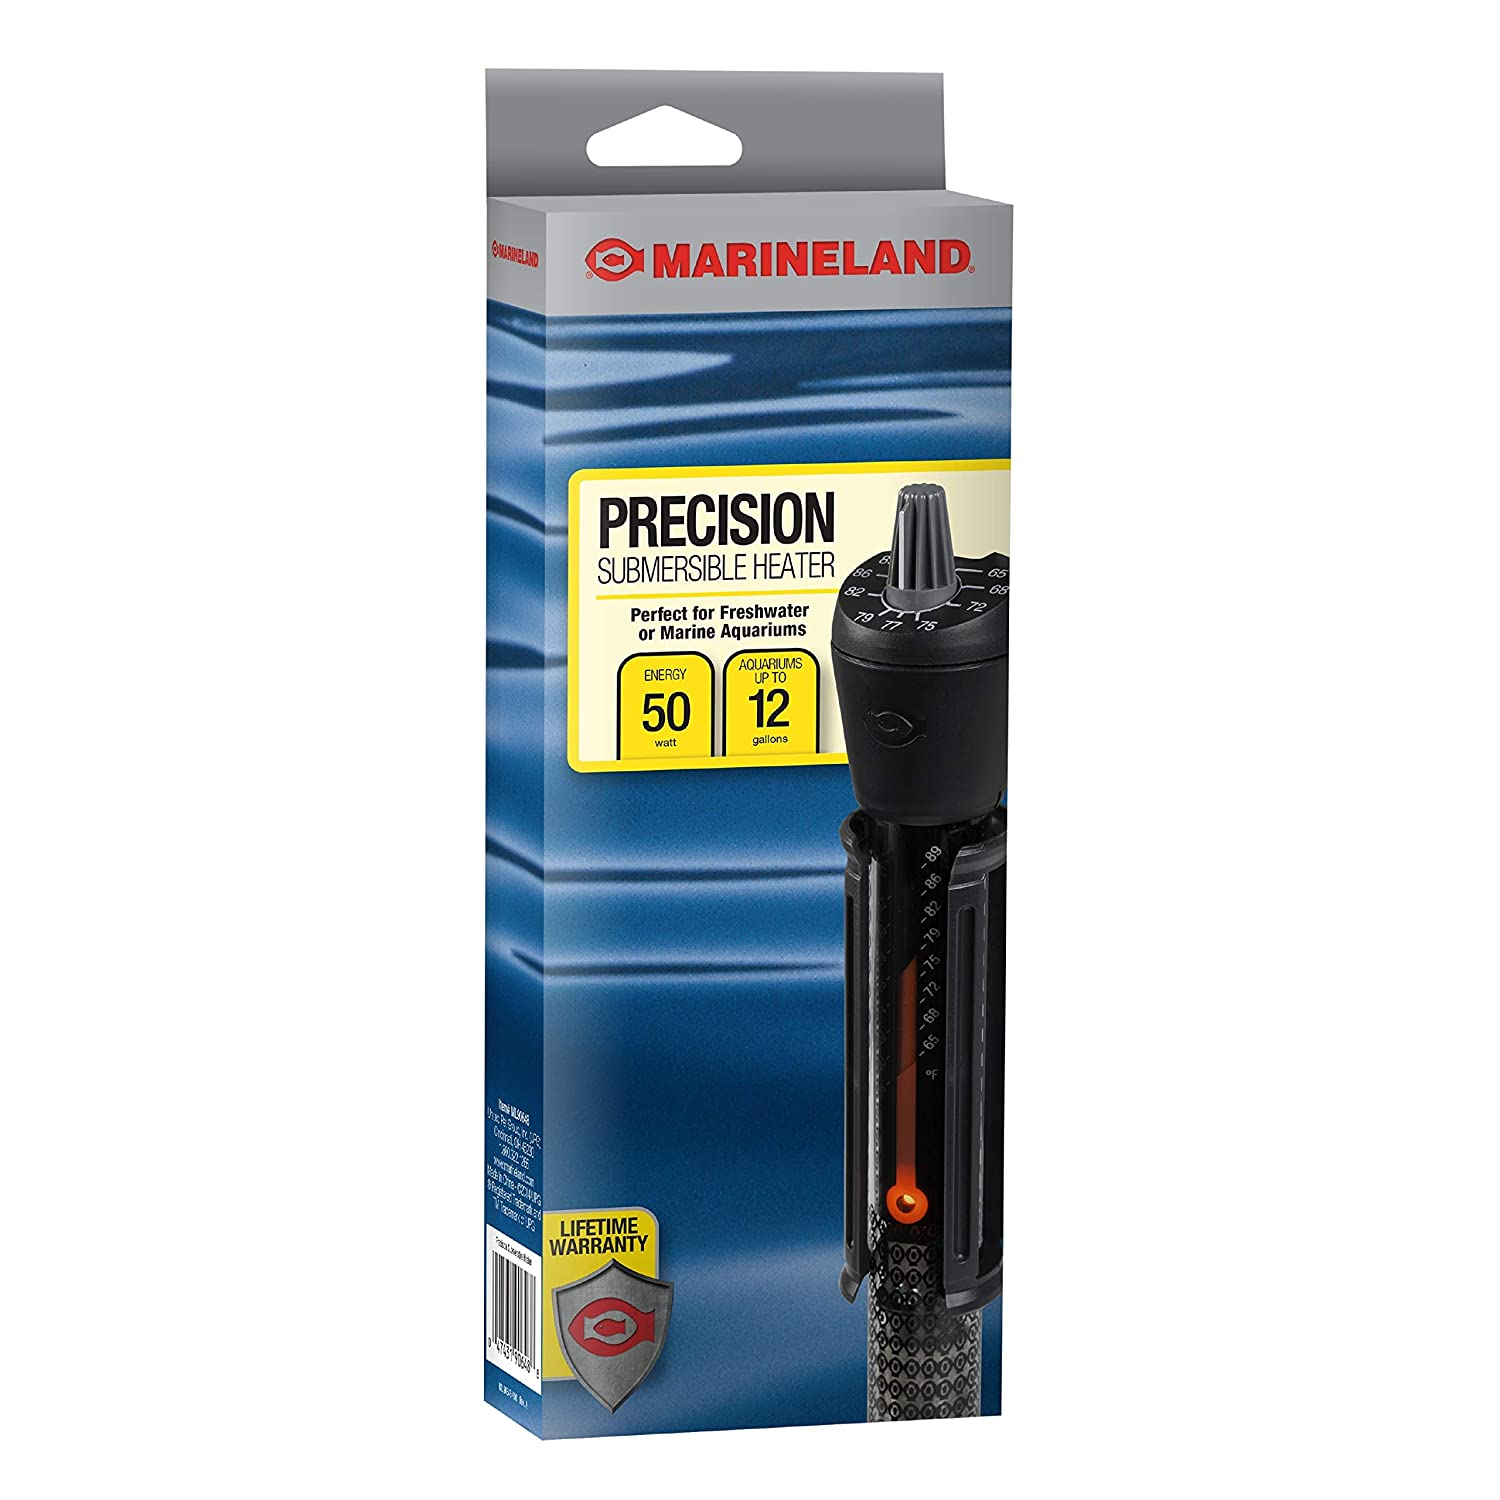 50-watt Marineland Precision Heater for Saltwater or Freshwater Aquariums